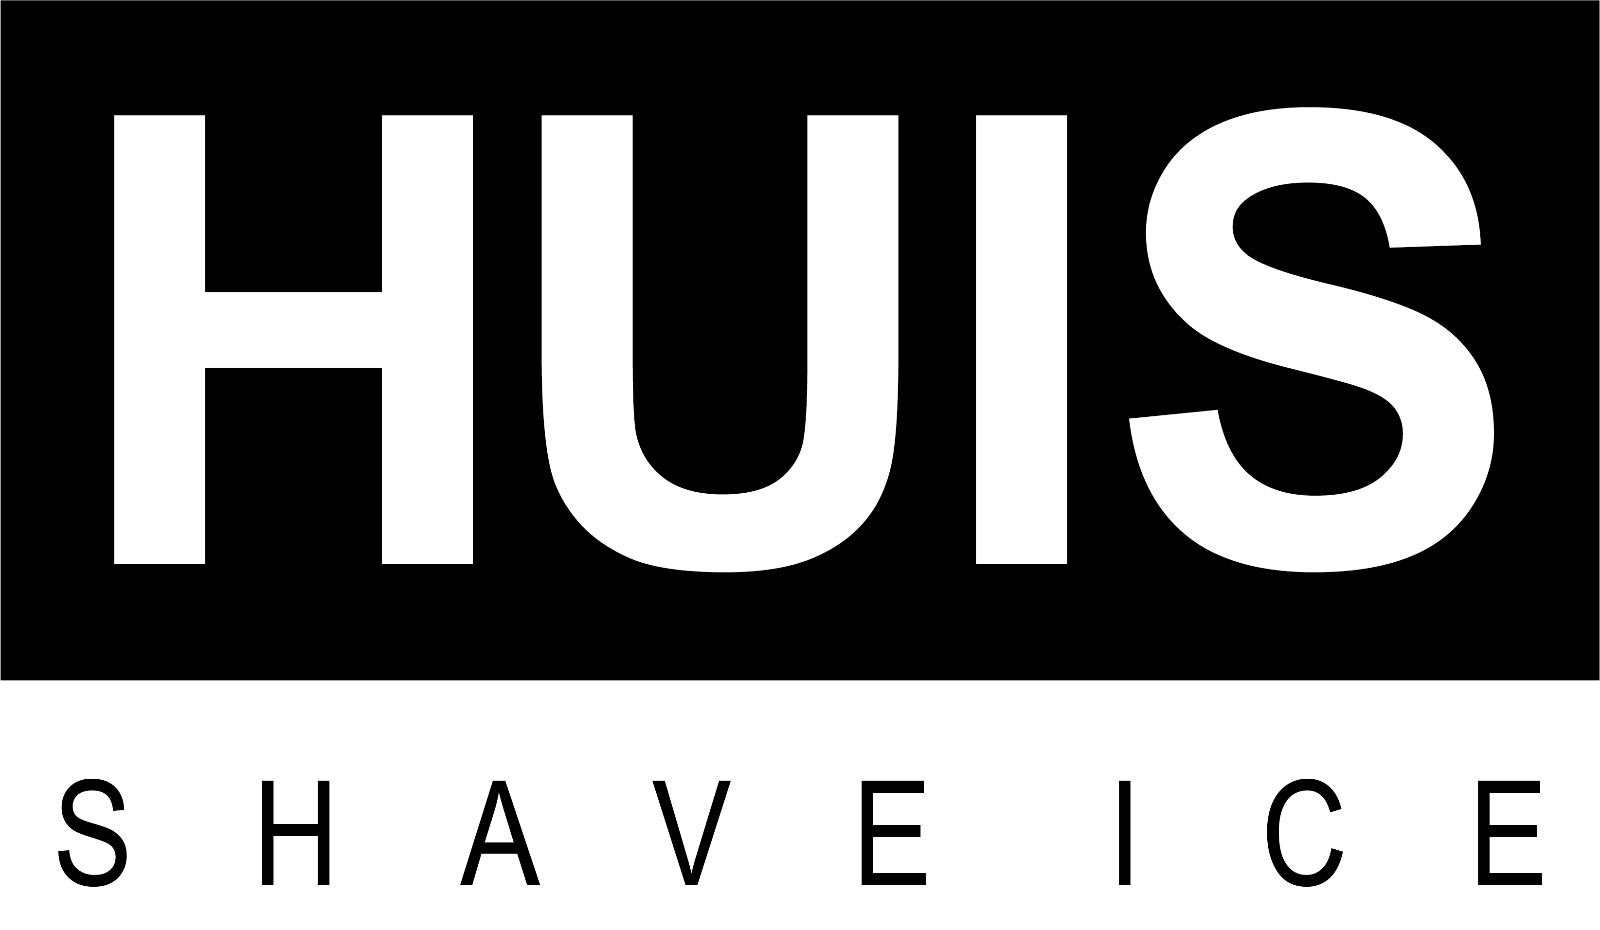 Huis Shave Ice Logo. HUIS is written a large white font on a black background.